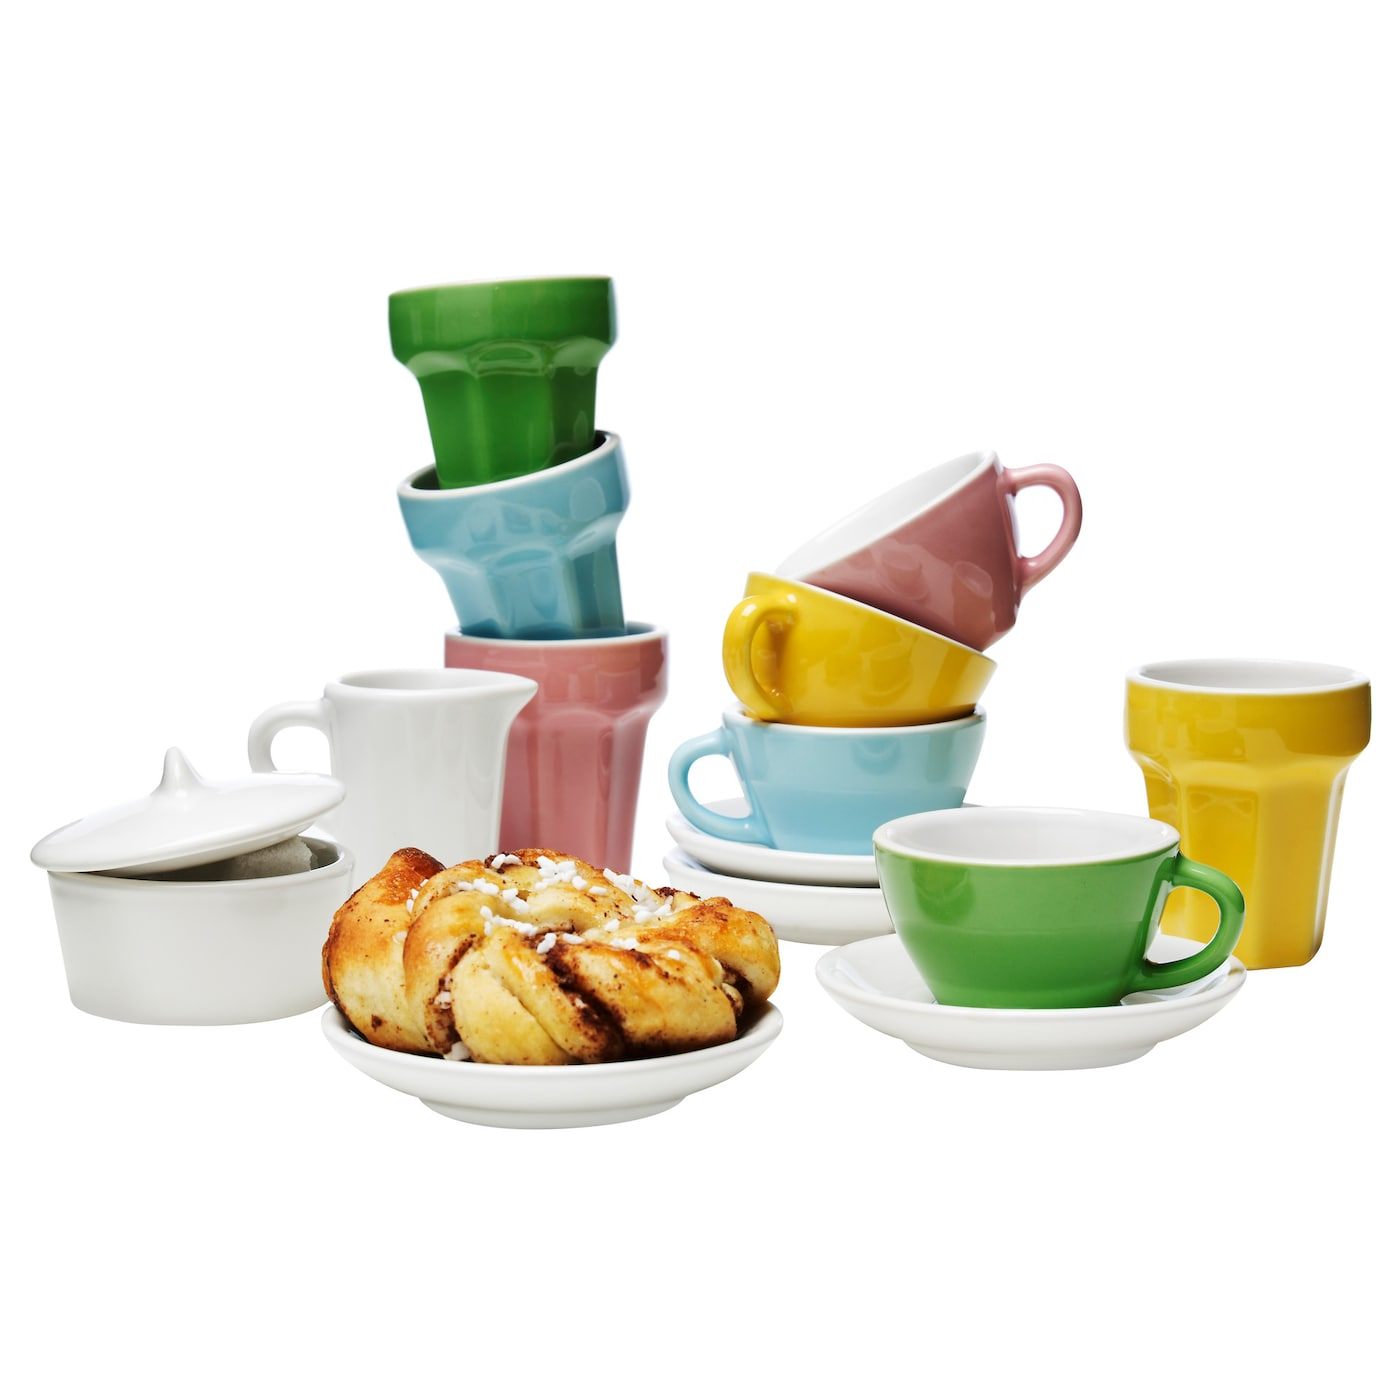 IKEA DUKTIG 10-piece coffee/tea set Mini tea and coffee cups and café latte mugs for play.